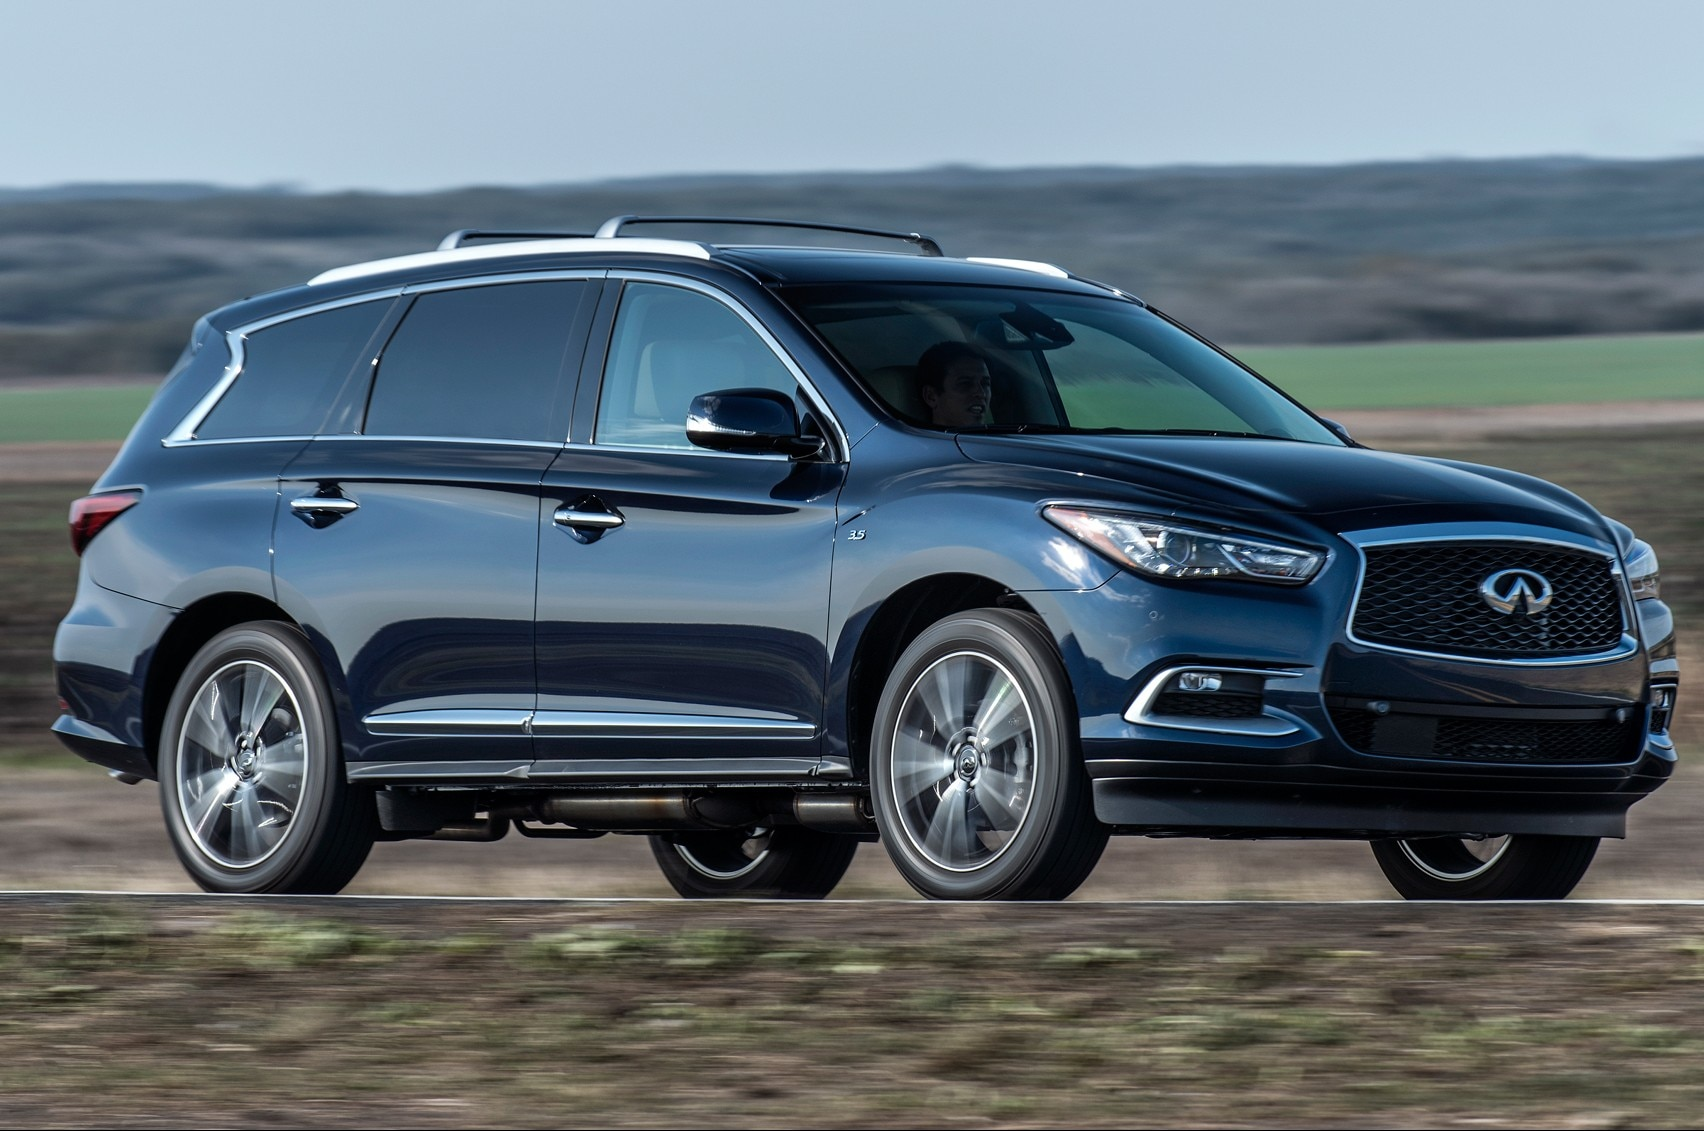 2017 infiniti qx60 receives extra 30 hp priced at 44 095 automobile magazine. Black Bedroom Furniture Sets. Home Design Ideas